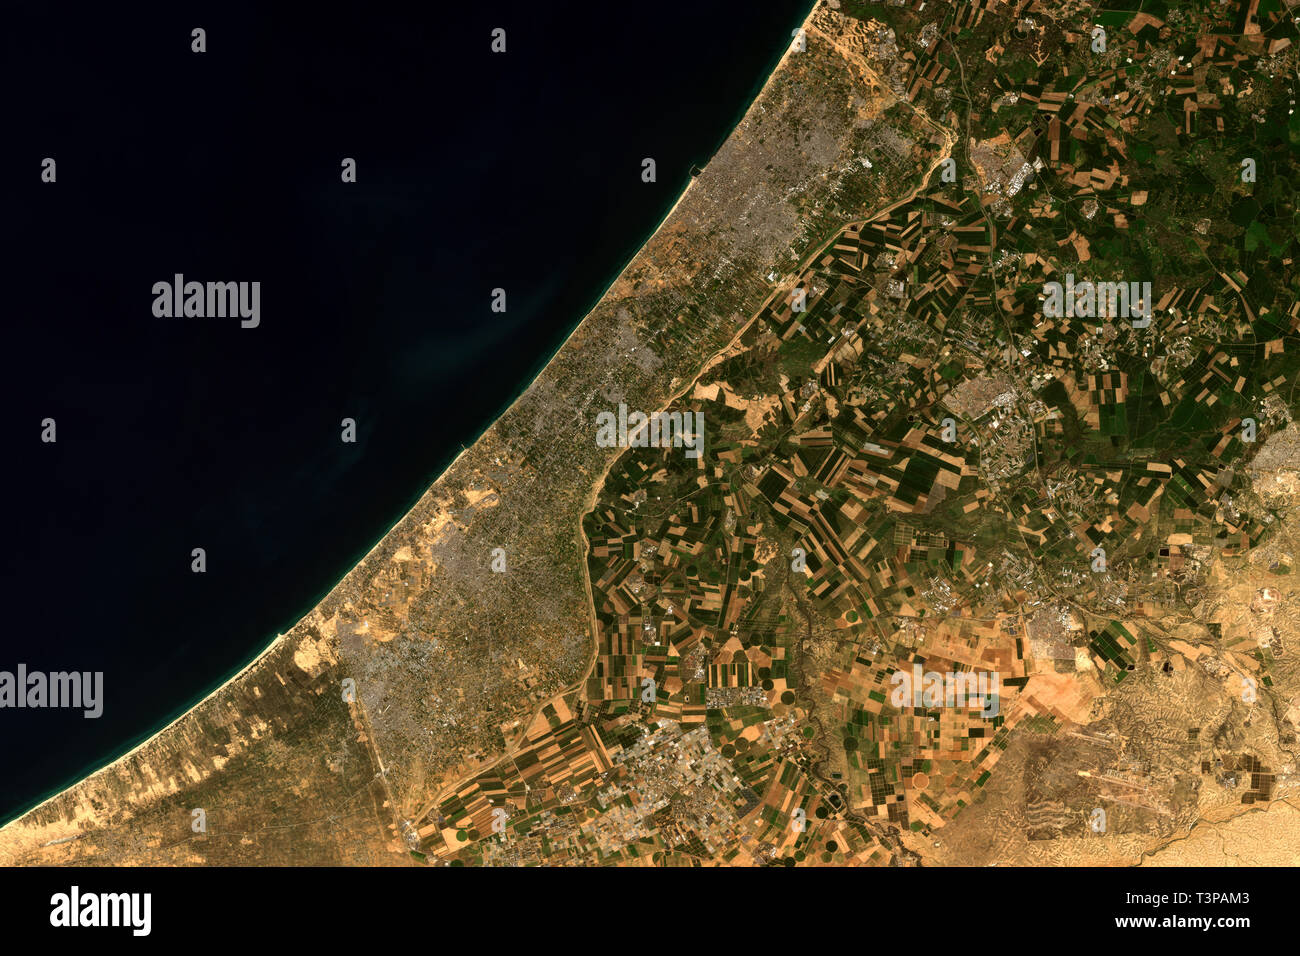 The Gaza Strip, a self-governing Palestinian territory seen from space - contains modified Copernicus Sentinel Data (2019) Stock Photo